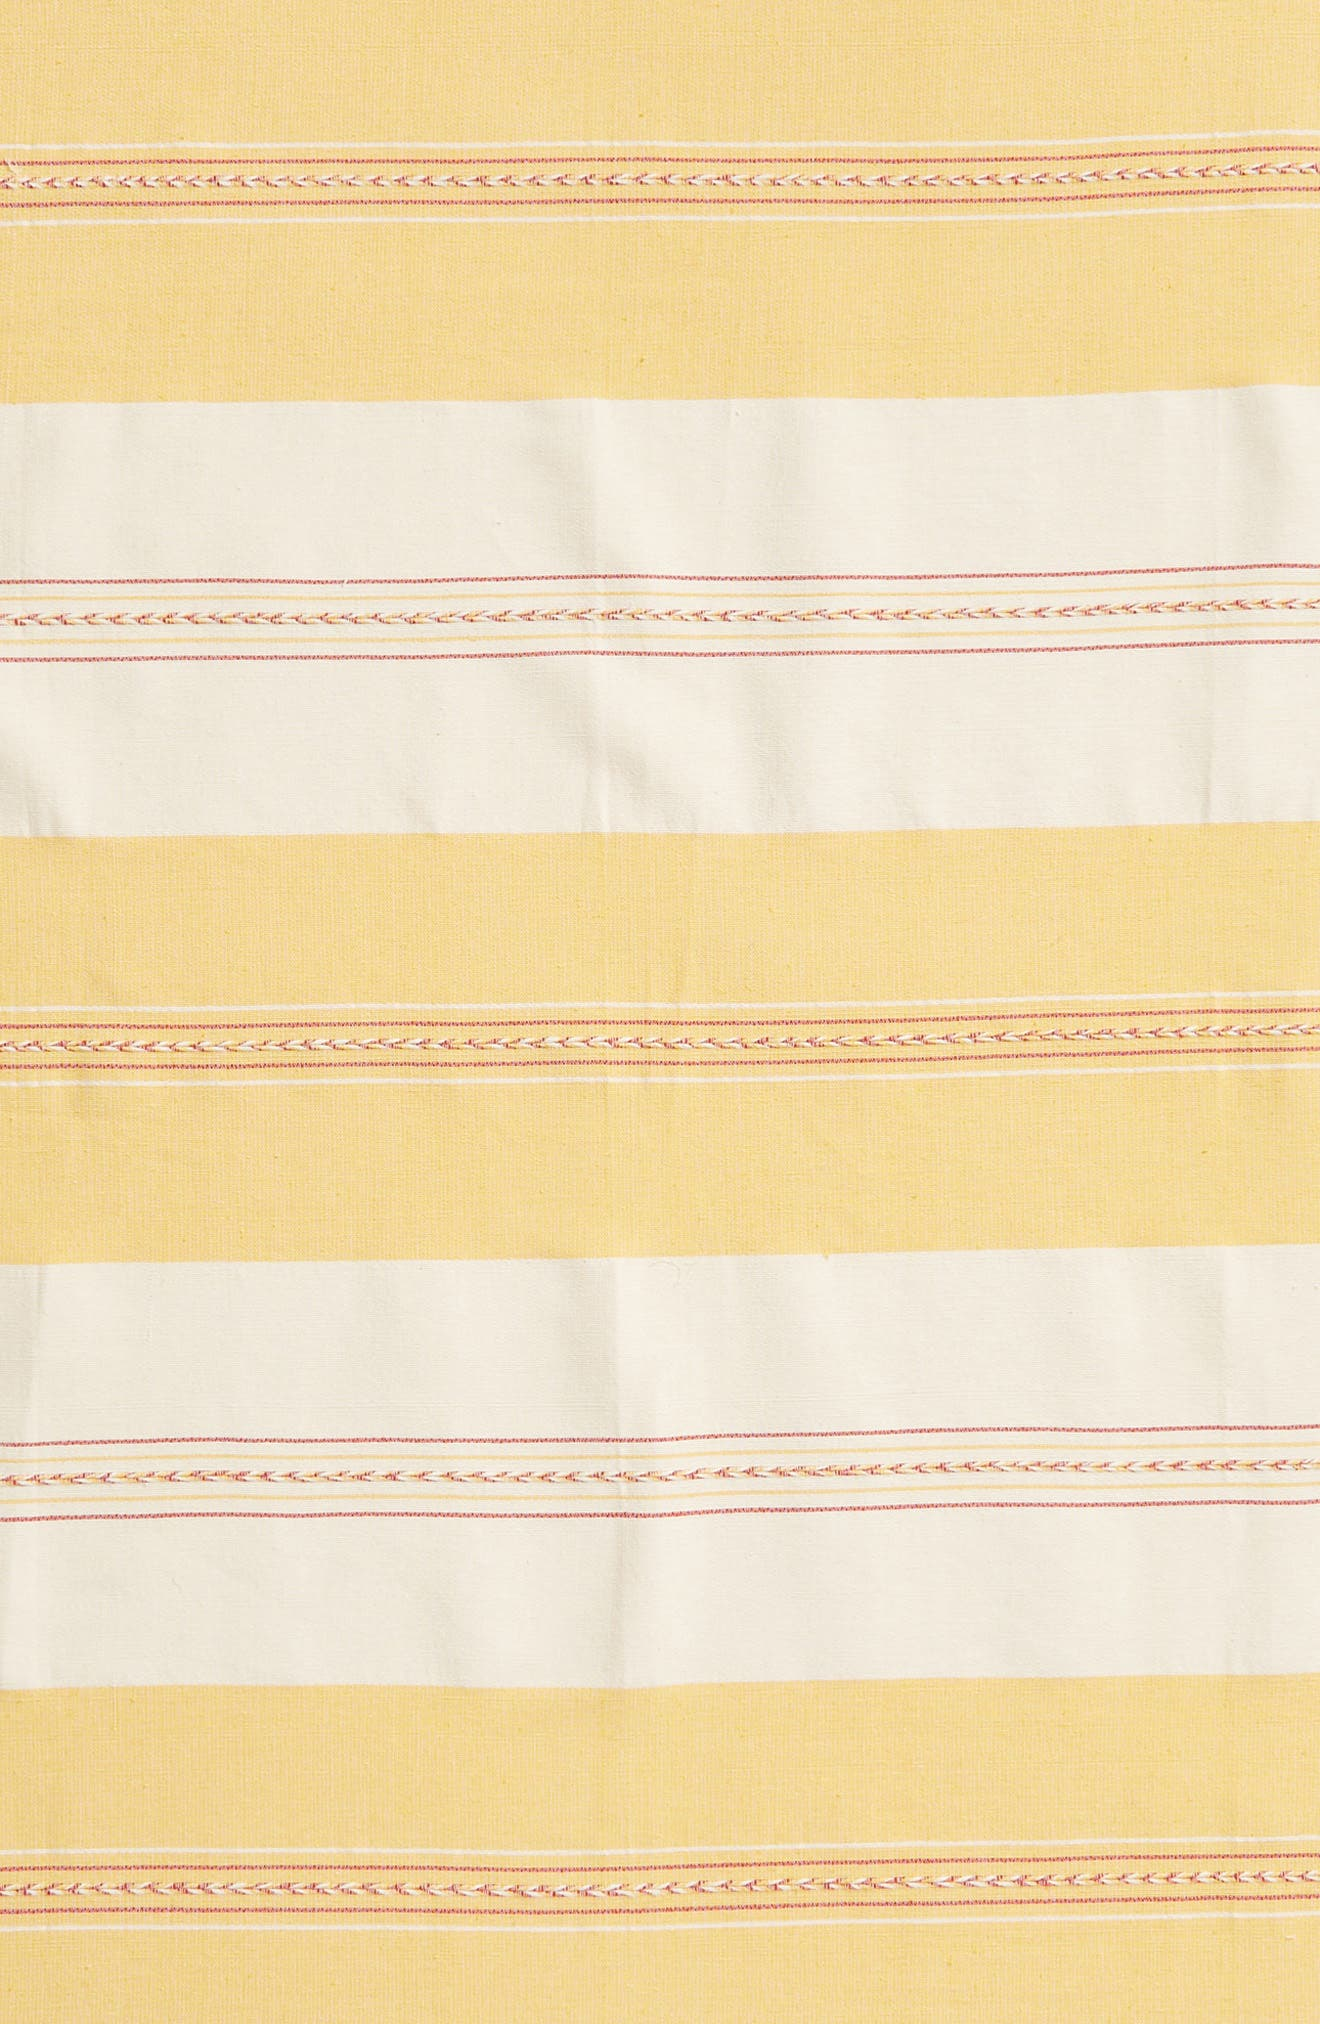 Golden Dunes Woven Cotton Blanket,                             Alternate thumbnail 3, color,                             250